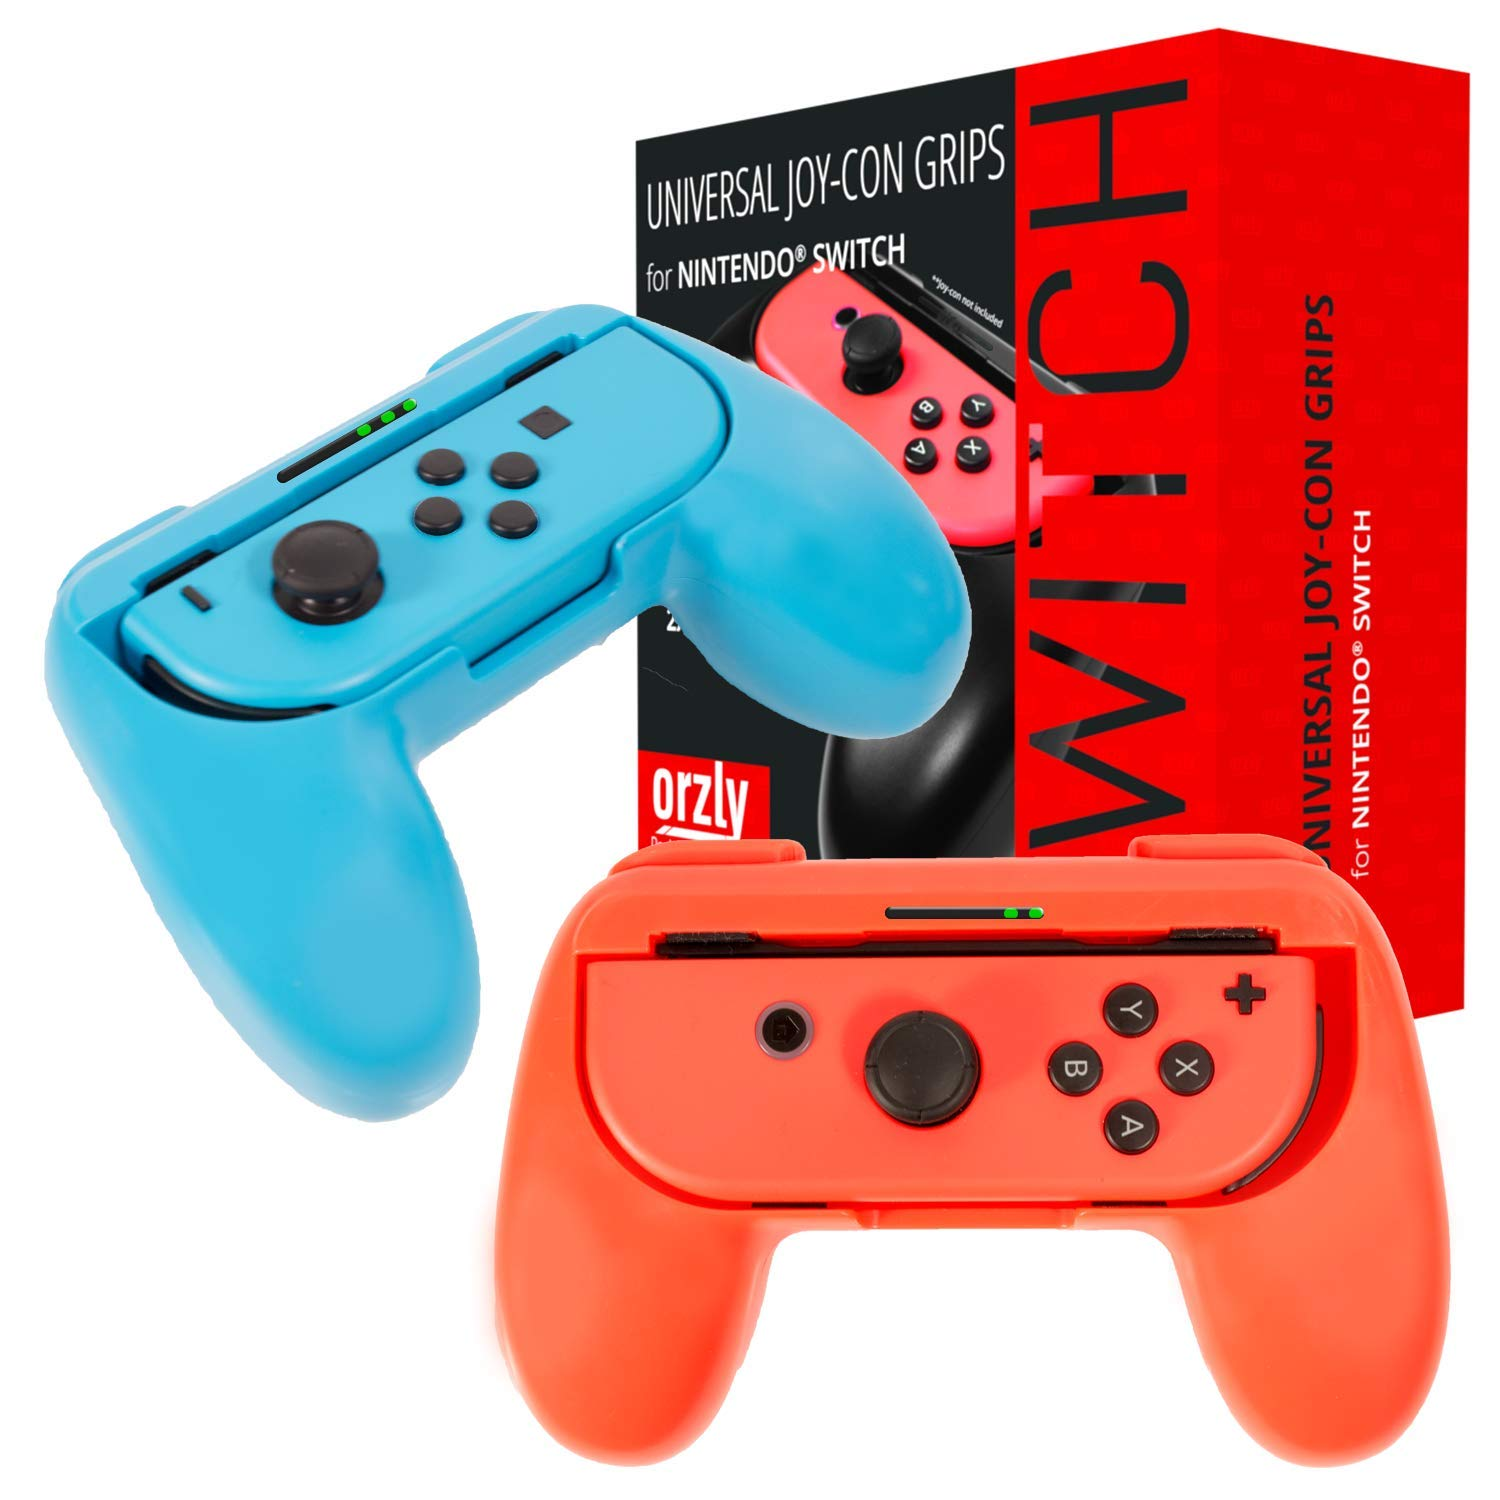 Amazon.com: Orzly Grips compatible with Nintendo Switch Joy-Cons for ...